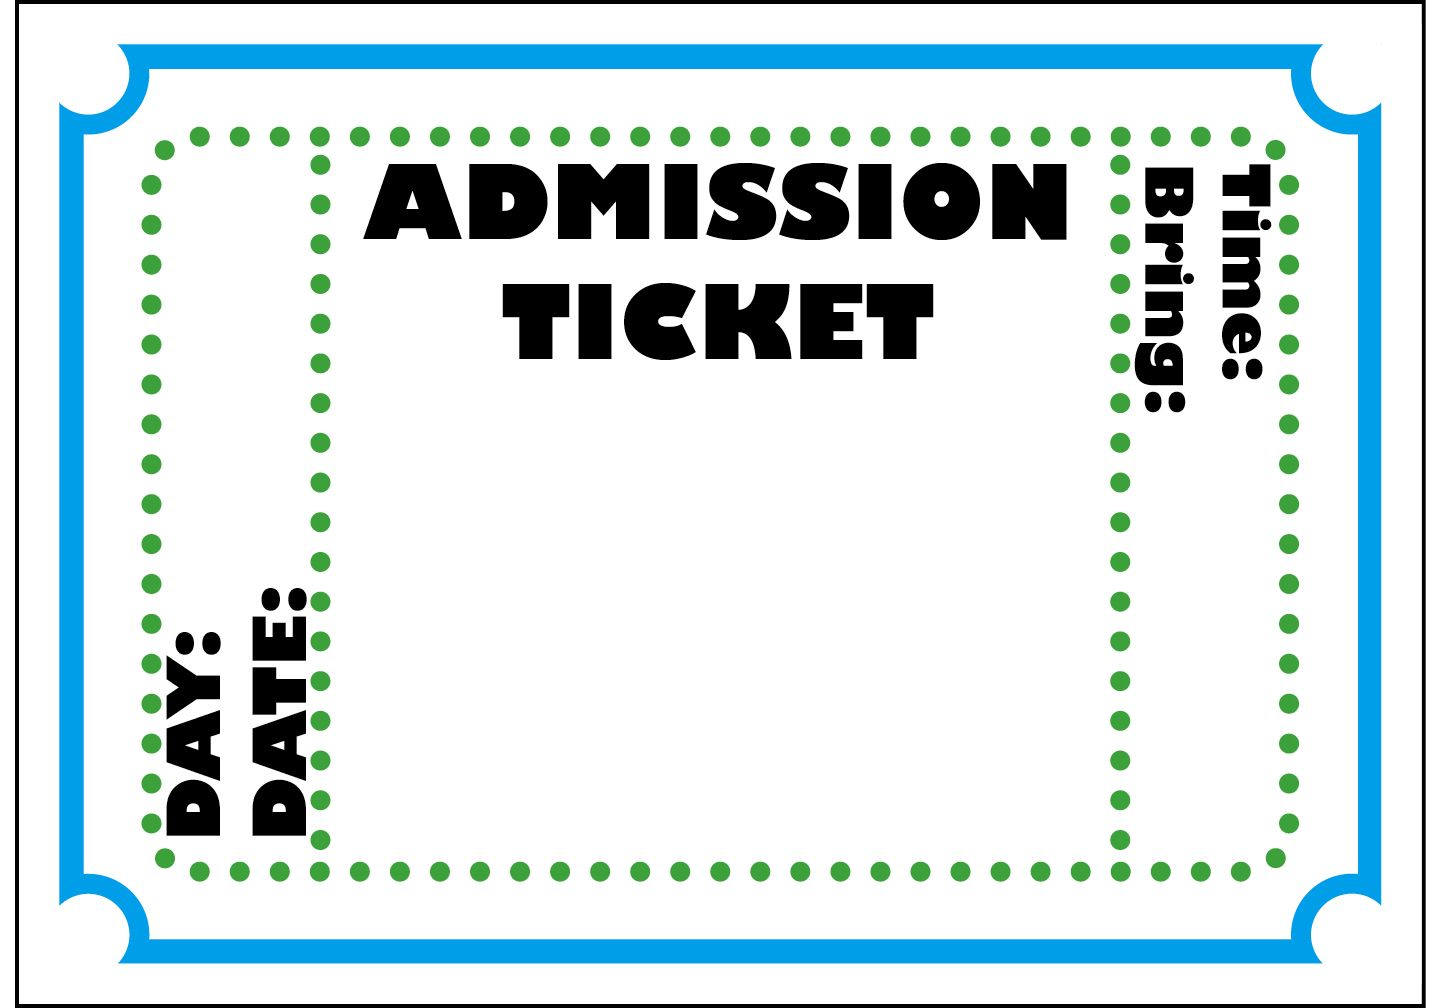 Mormon Share Admission Ticket Ticket Template Ticket Template Printable Movie Ticket Template Free event ticket template download